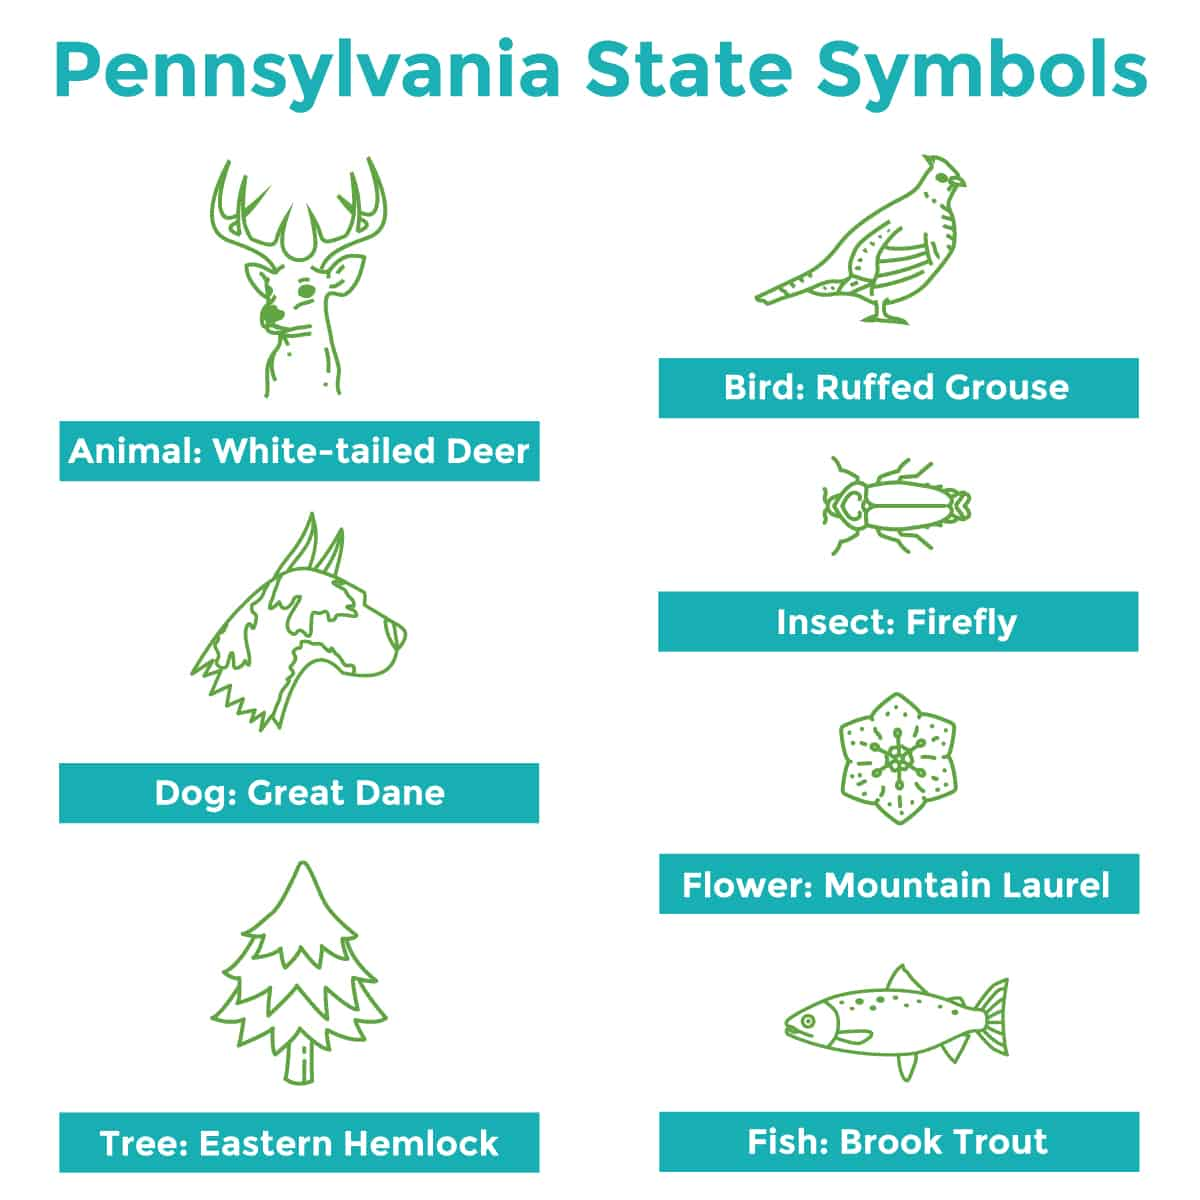 Images of PA state symbols.